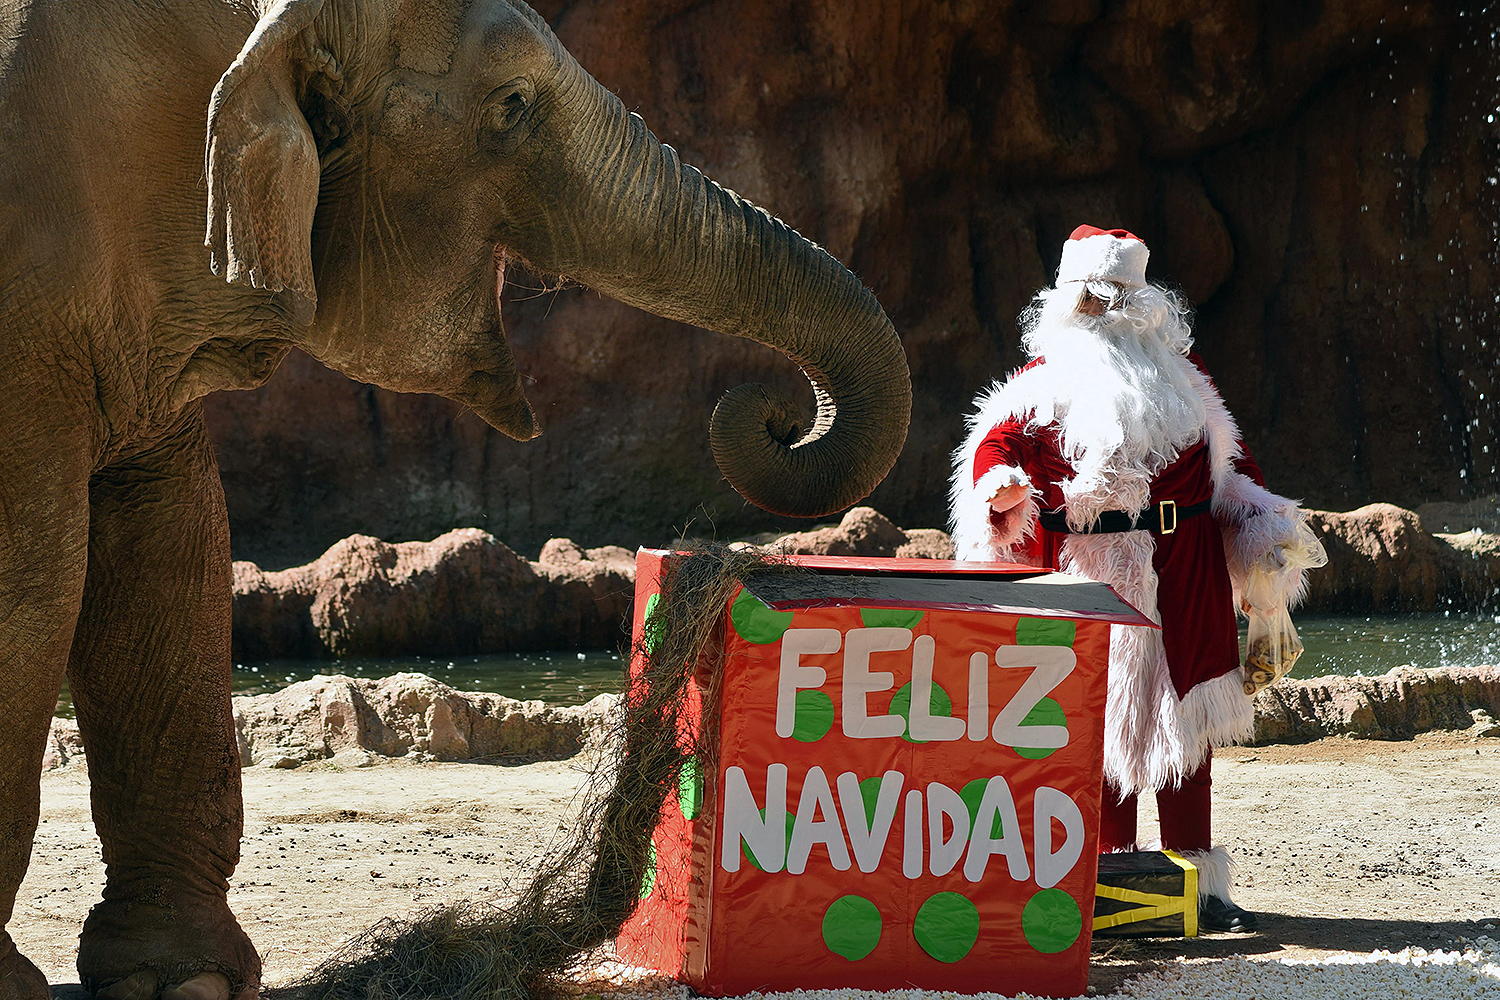 Being on Santa's Nice List. Elephant Trompita tries to open a gift brought by a visitor as a caretaker dressed as Santa Claus looks on as part of a Christmas tradition at La Aurora Zoo in Guatemala City on Dec. 18. ORLANDO  ESTRADA/AFP via Getty Images